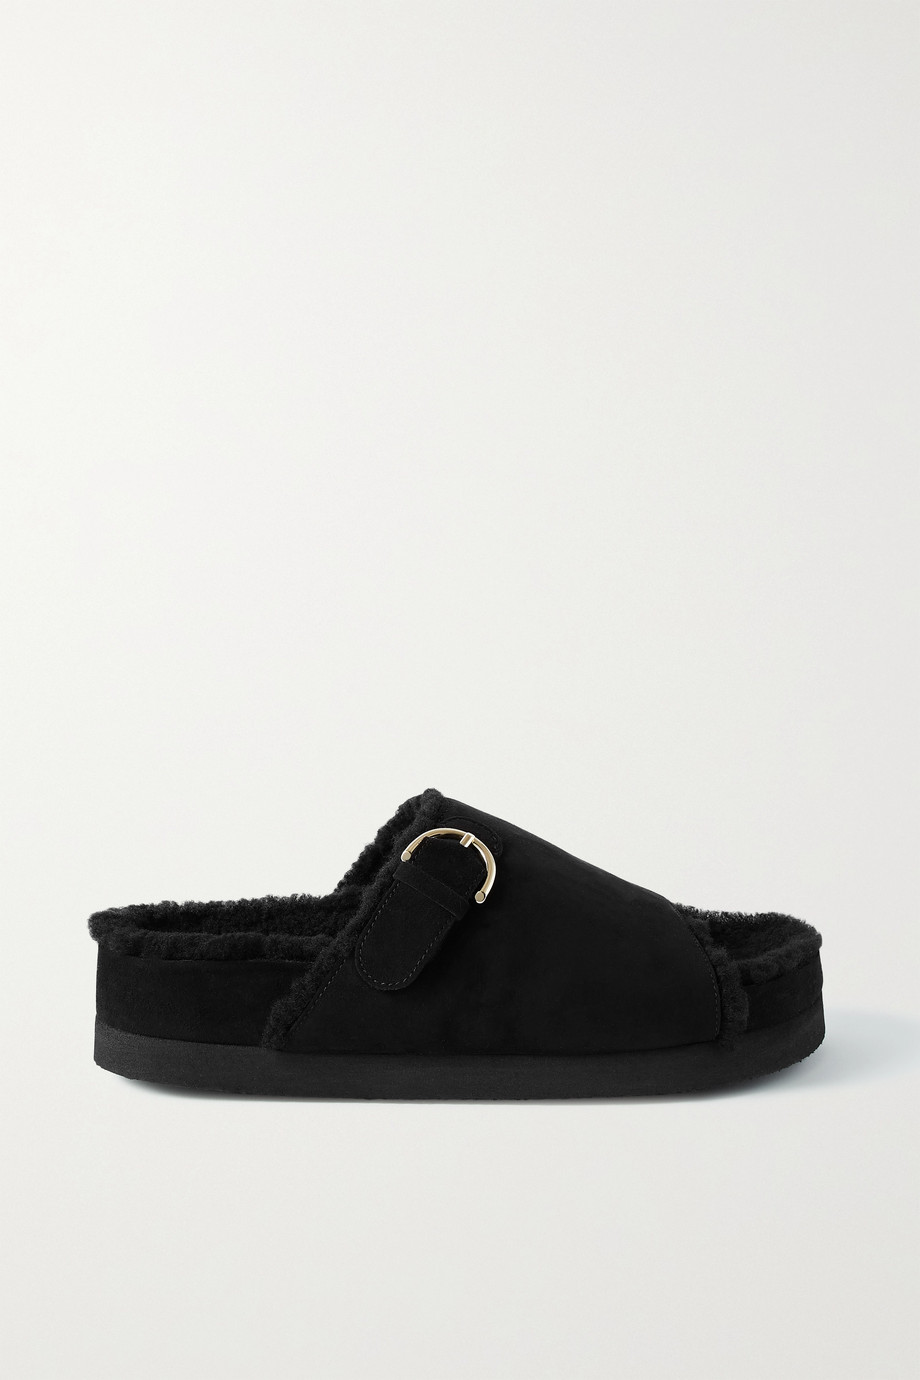 Co Buckled shearling-lined suede platform slides